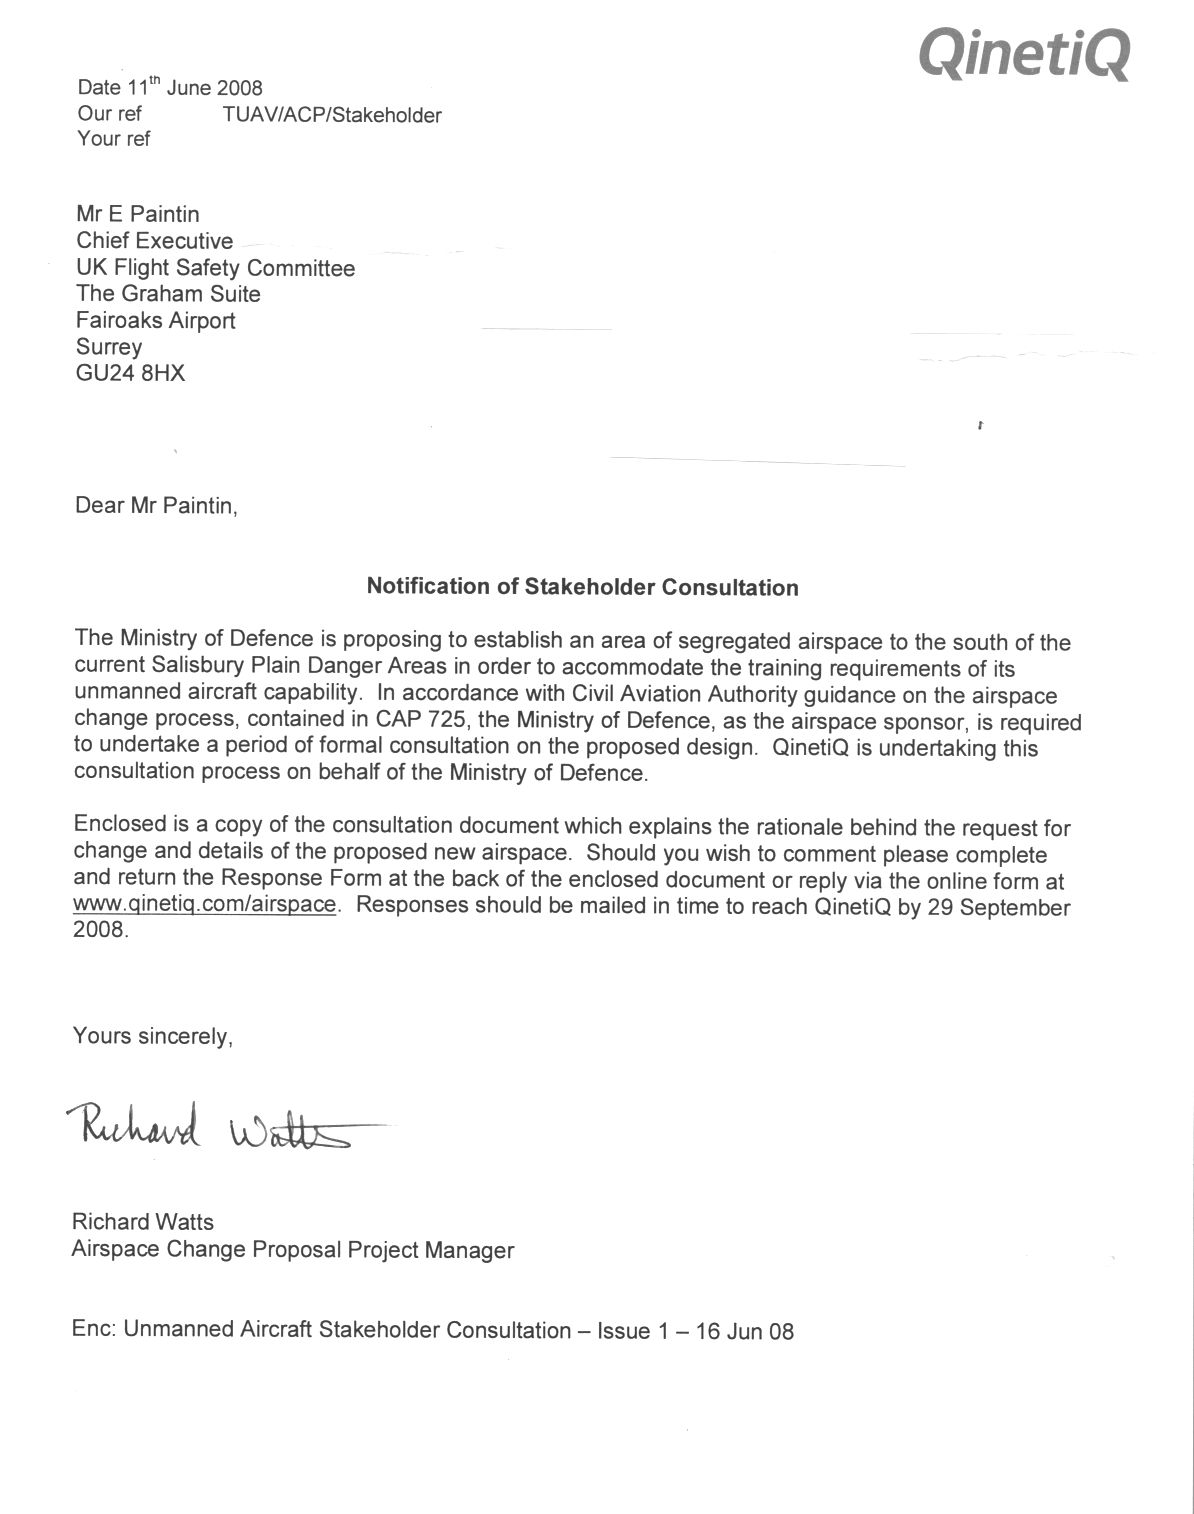 Qinetiq stakeholder consultation letter june 2008 ukfsc for How to address relocation in a cover letter